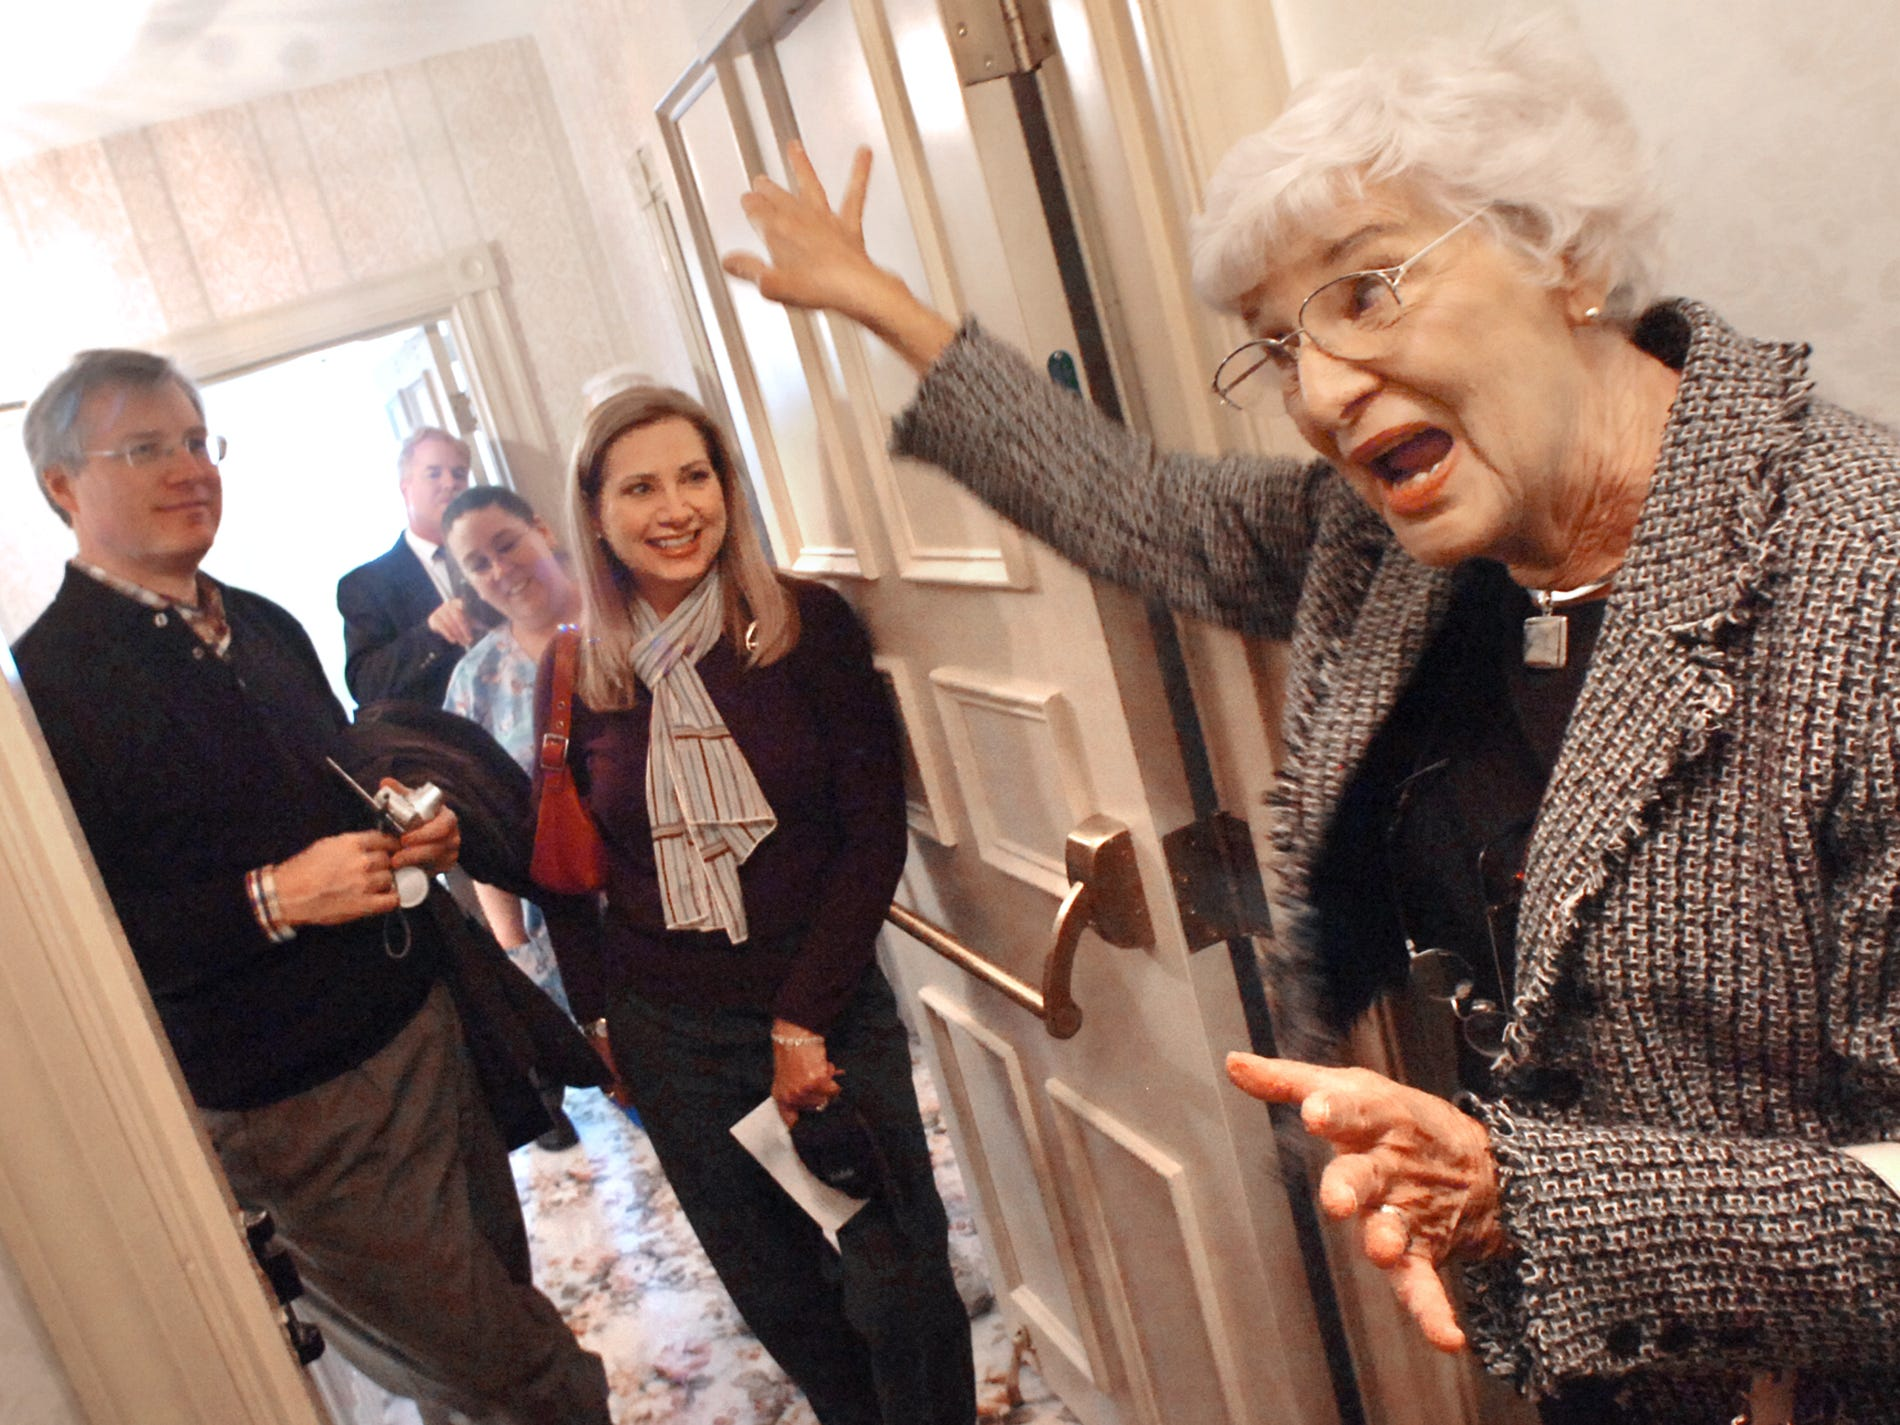 Robert Paul Niess, left, and Linda Tartak watch in 2007 as their mother, Ann Small Niess, right, talks about the ghosts that she said lived in her old house. Niess' family, a friend and others toured the Elmwood Mansion, which is now owned by Memorial Hospital.